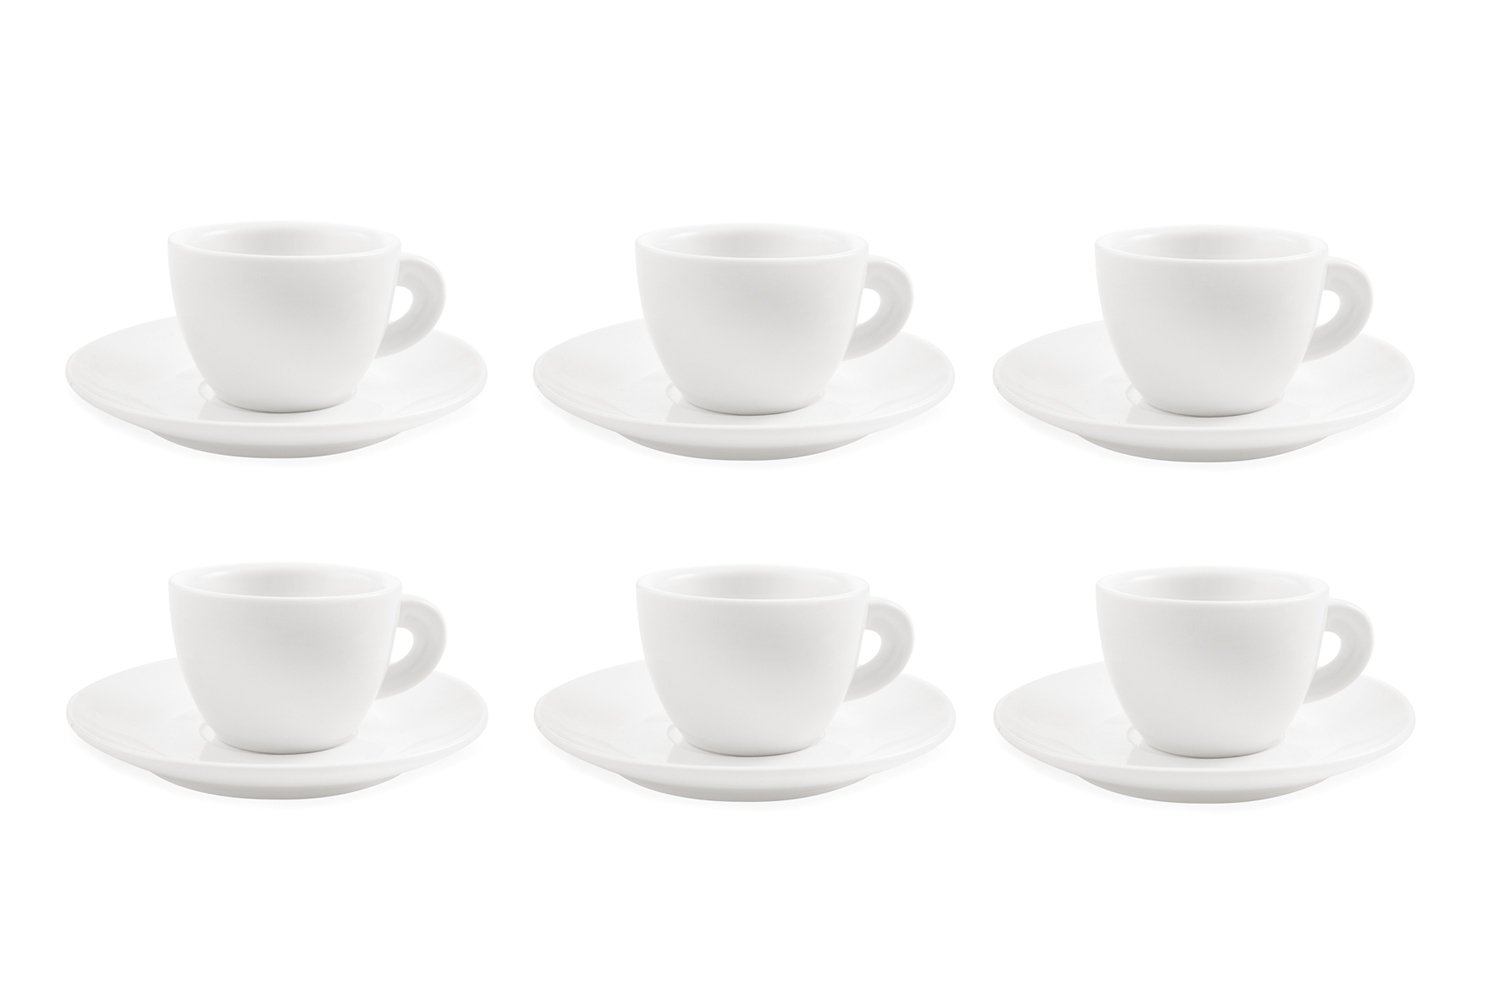 Galileo Casa White Set of 6 Tea Cups with Saucers, Porcelain 2177351